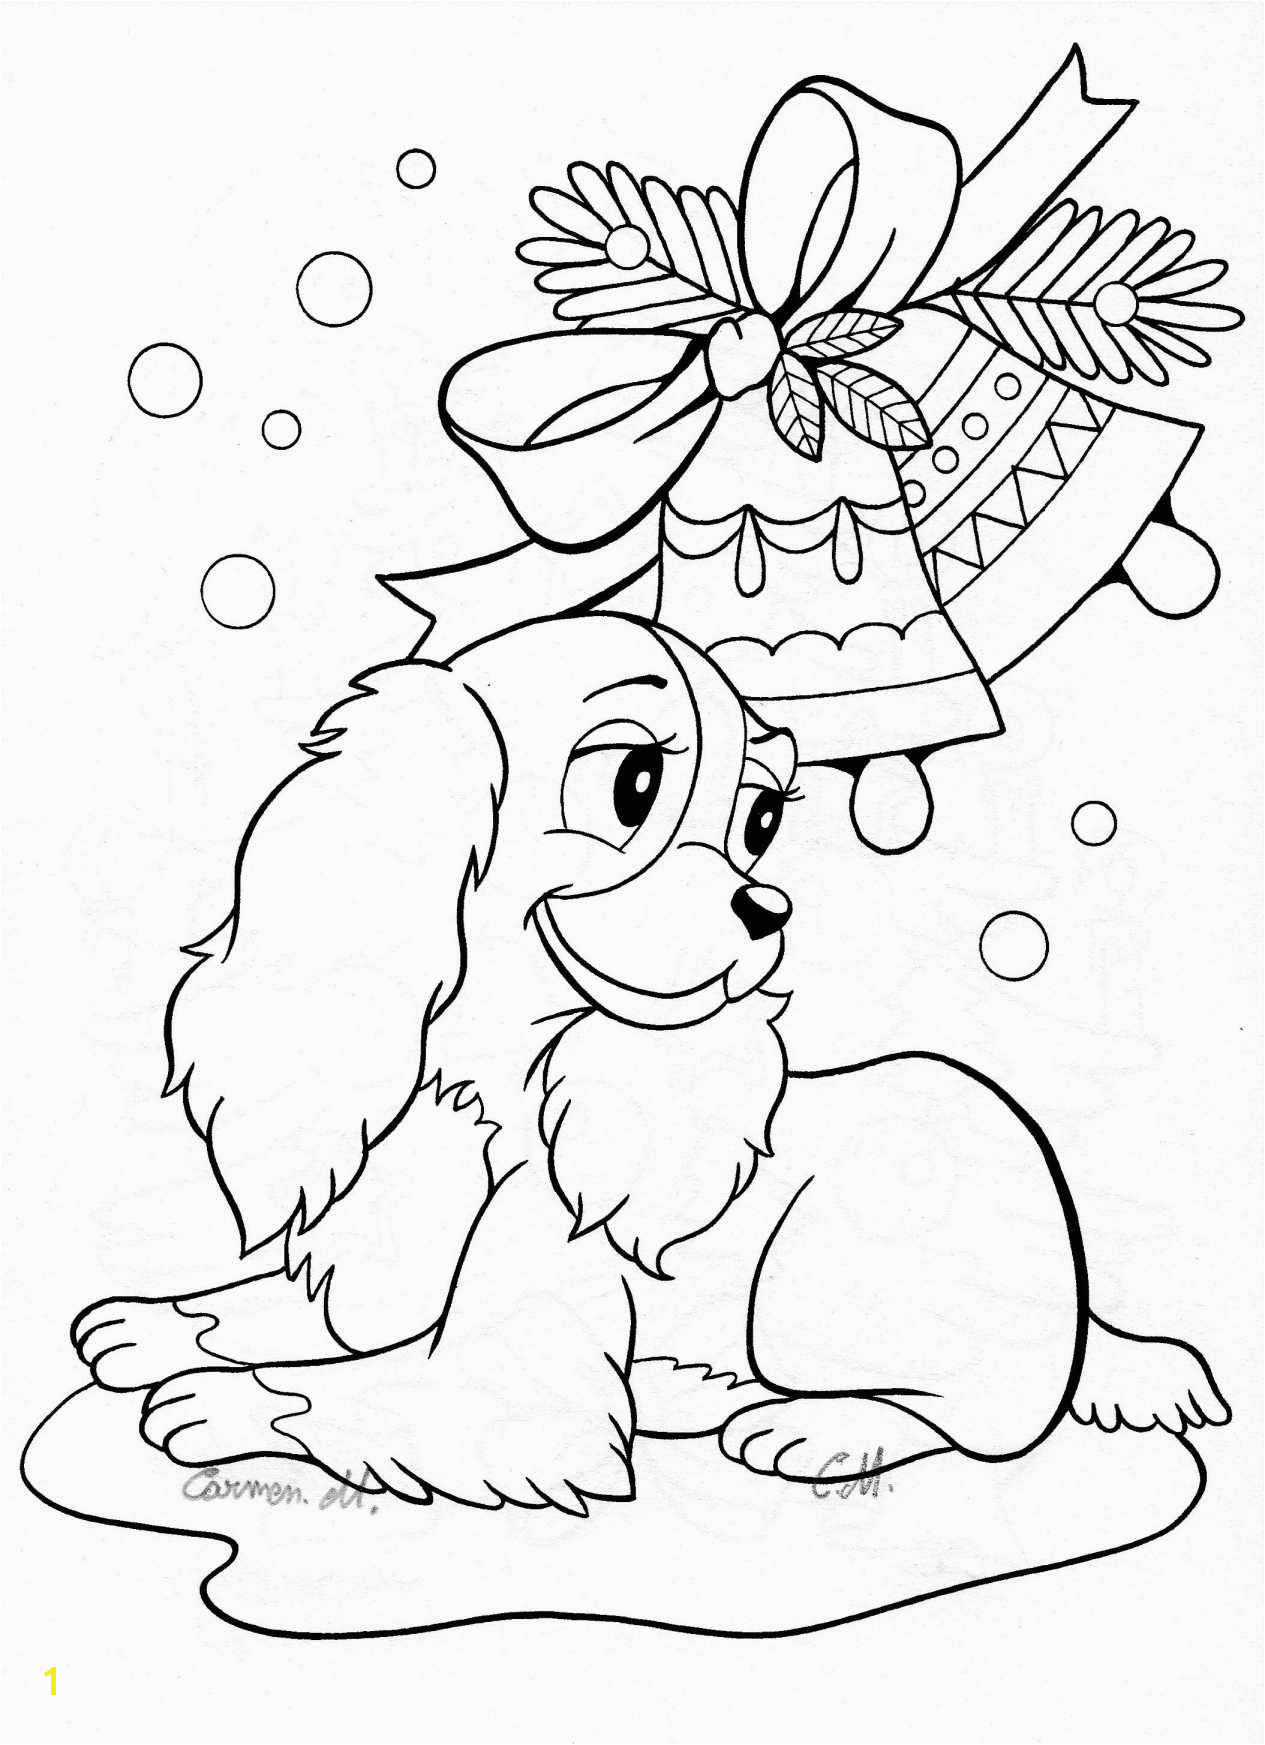 Merry Christmas Coloring Pages for toddlers Merry Christmas Coloring Pages for Kids Printable Od Dog Coloring